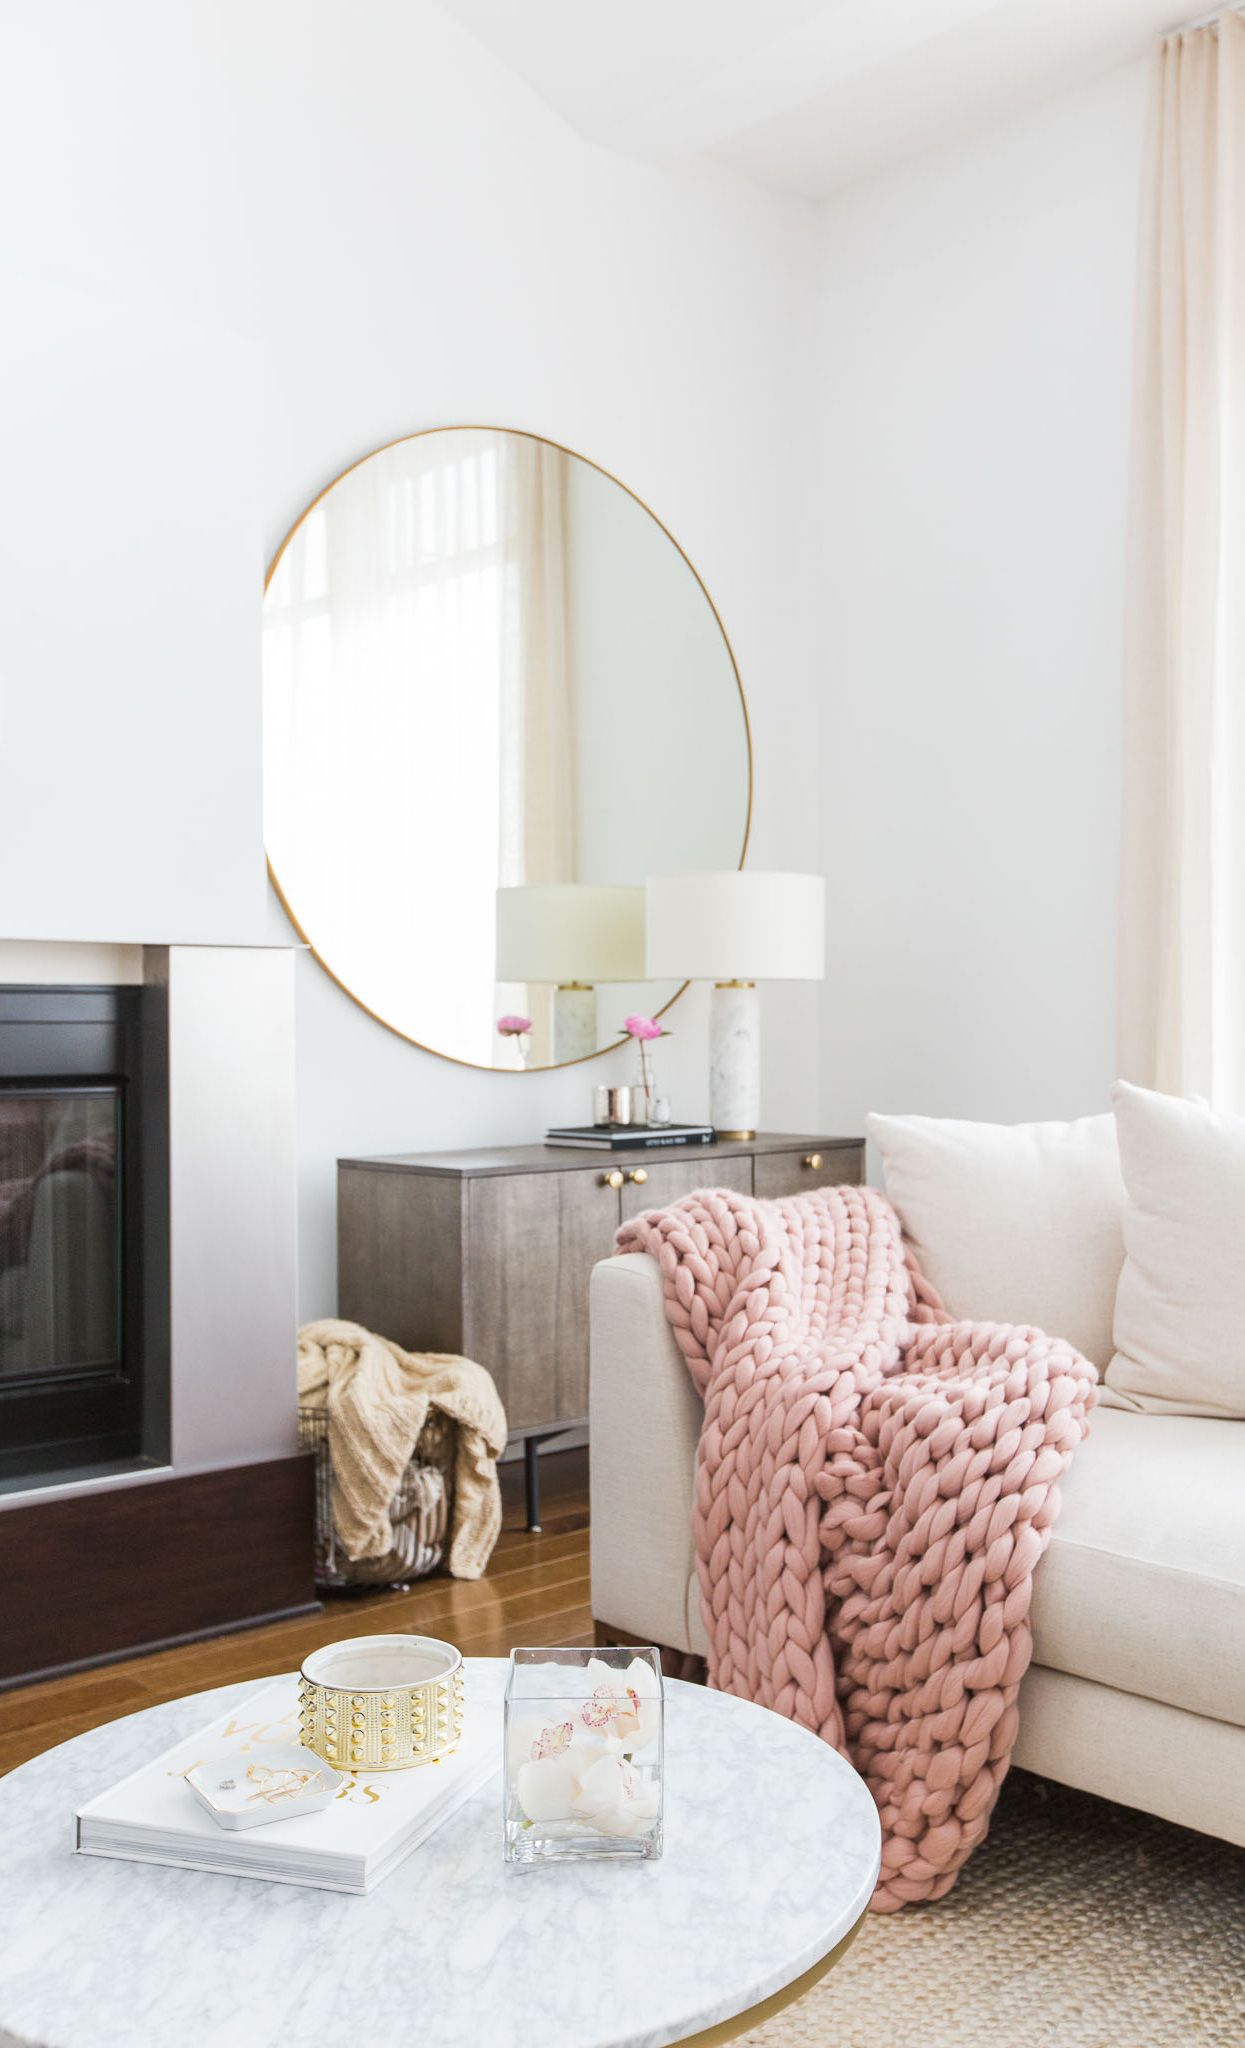 Marble coffee table with neutral couch in Marianna Hewitt's home